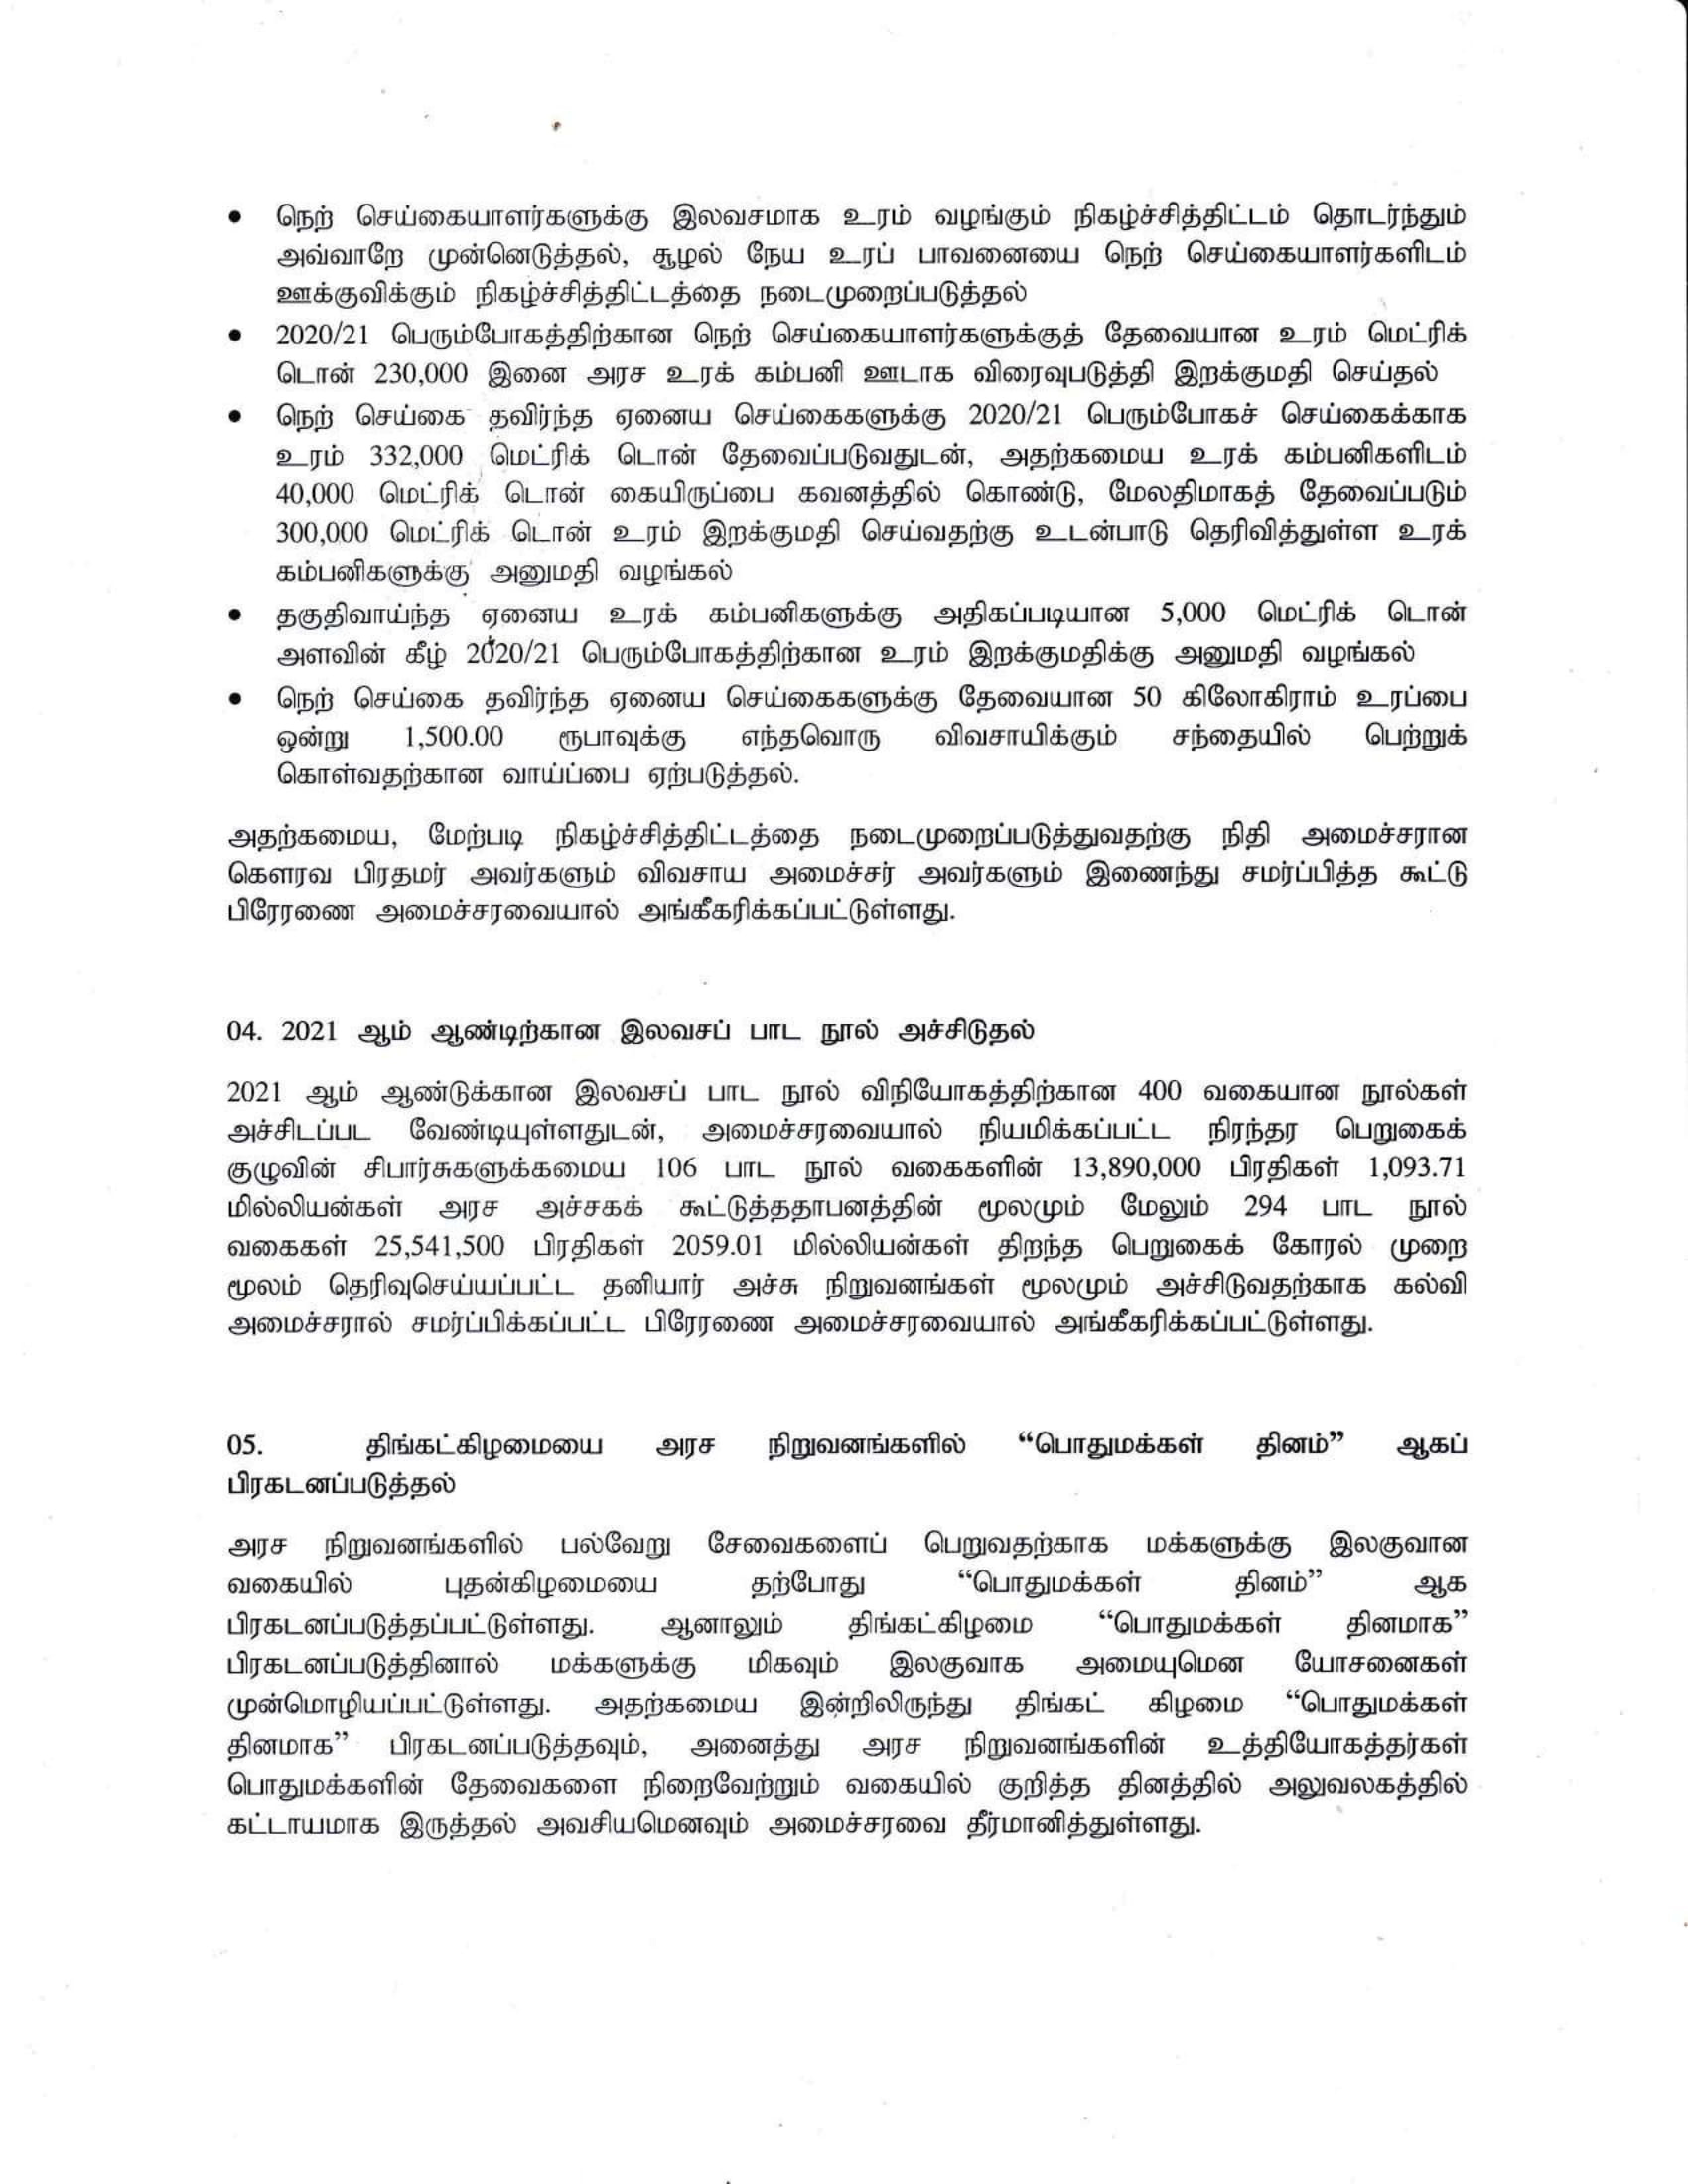 Cabinet Decision on 09.09.2020 Tamil 2